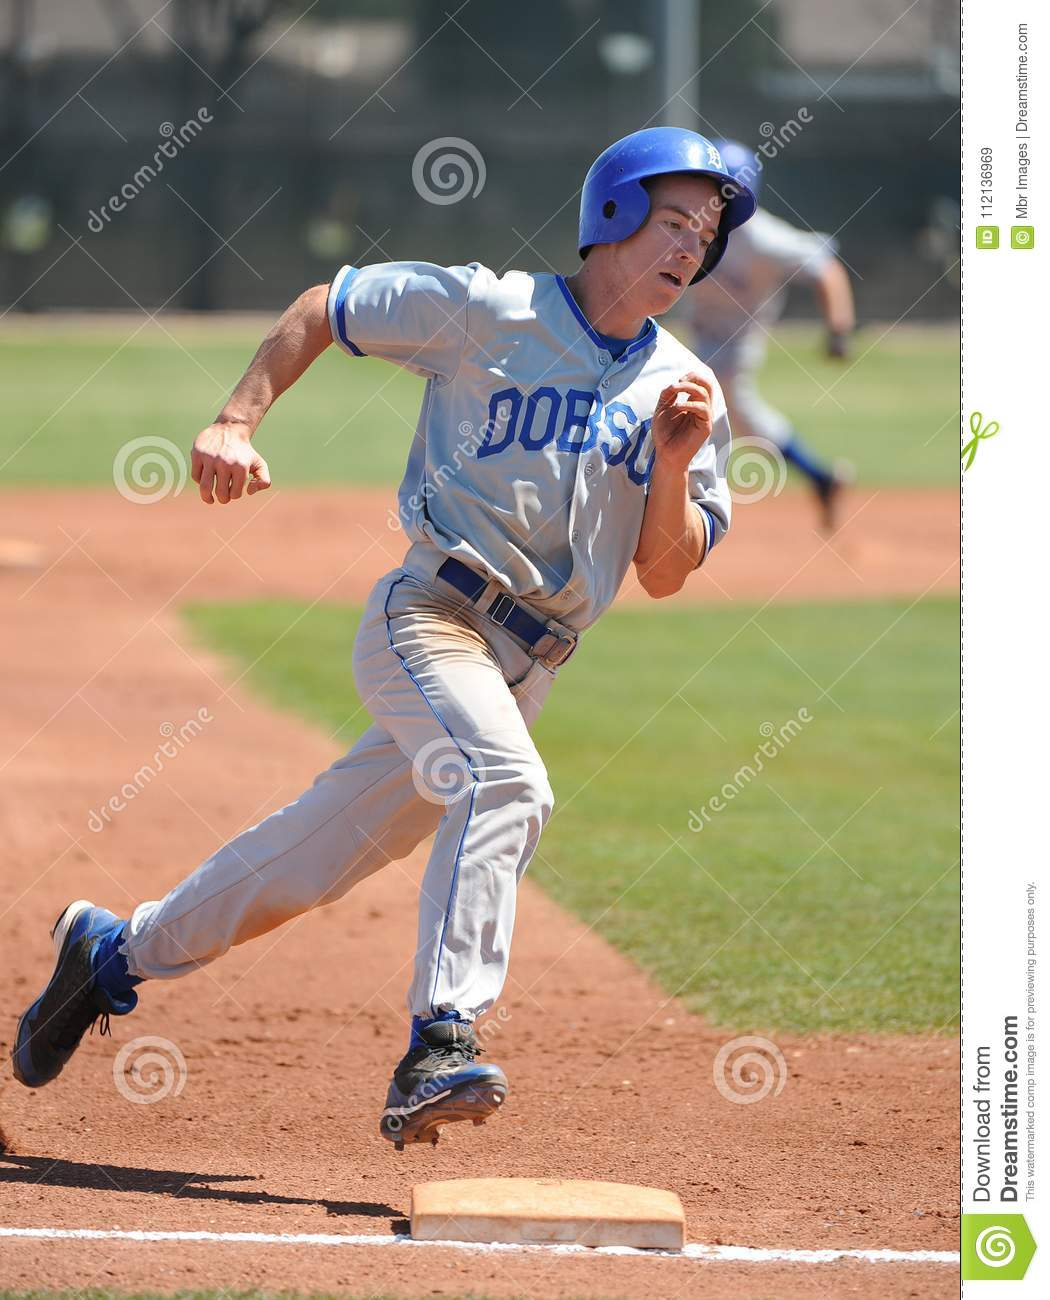 High School Baseball editorial stock image  Image of bases - 112136969